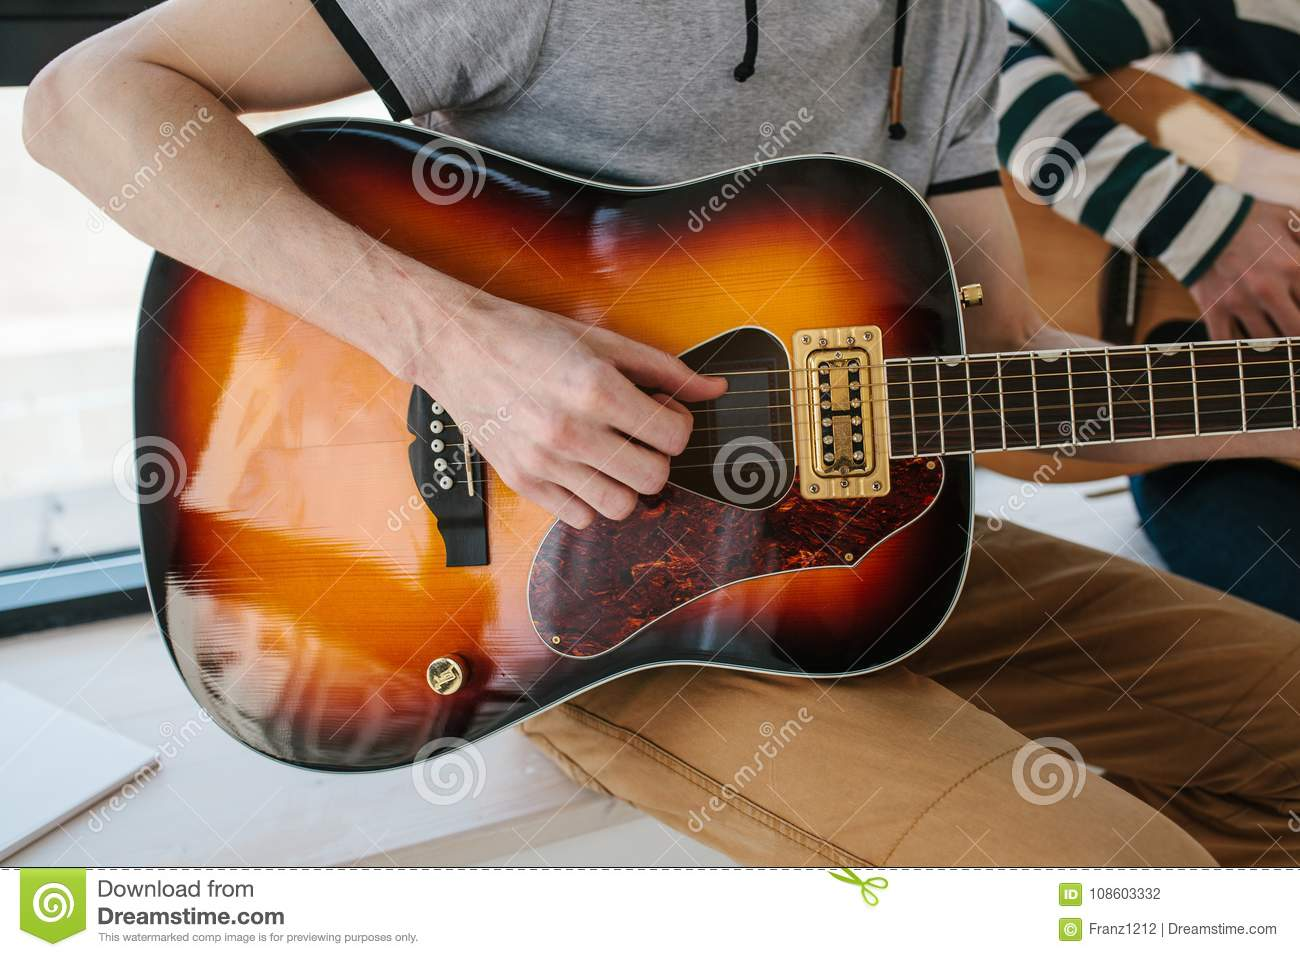 learning to play the guitar extra curricular lessons for adults music education masterclass. Black Bedroom Furniture Sets. Home Design Ideas